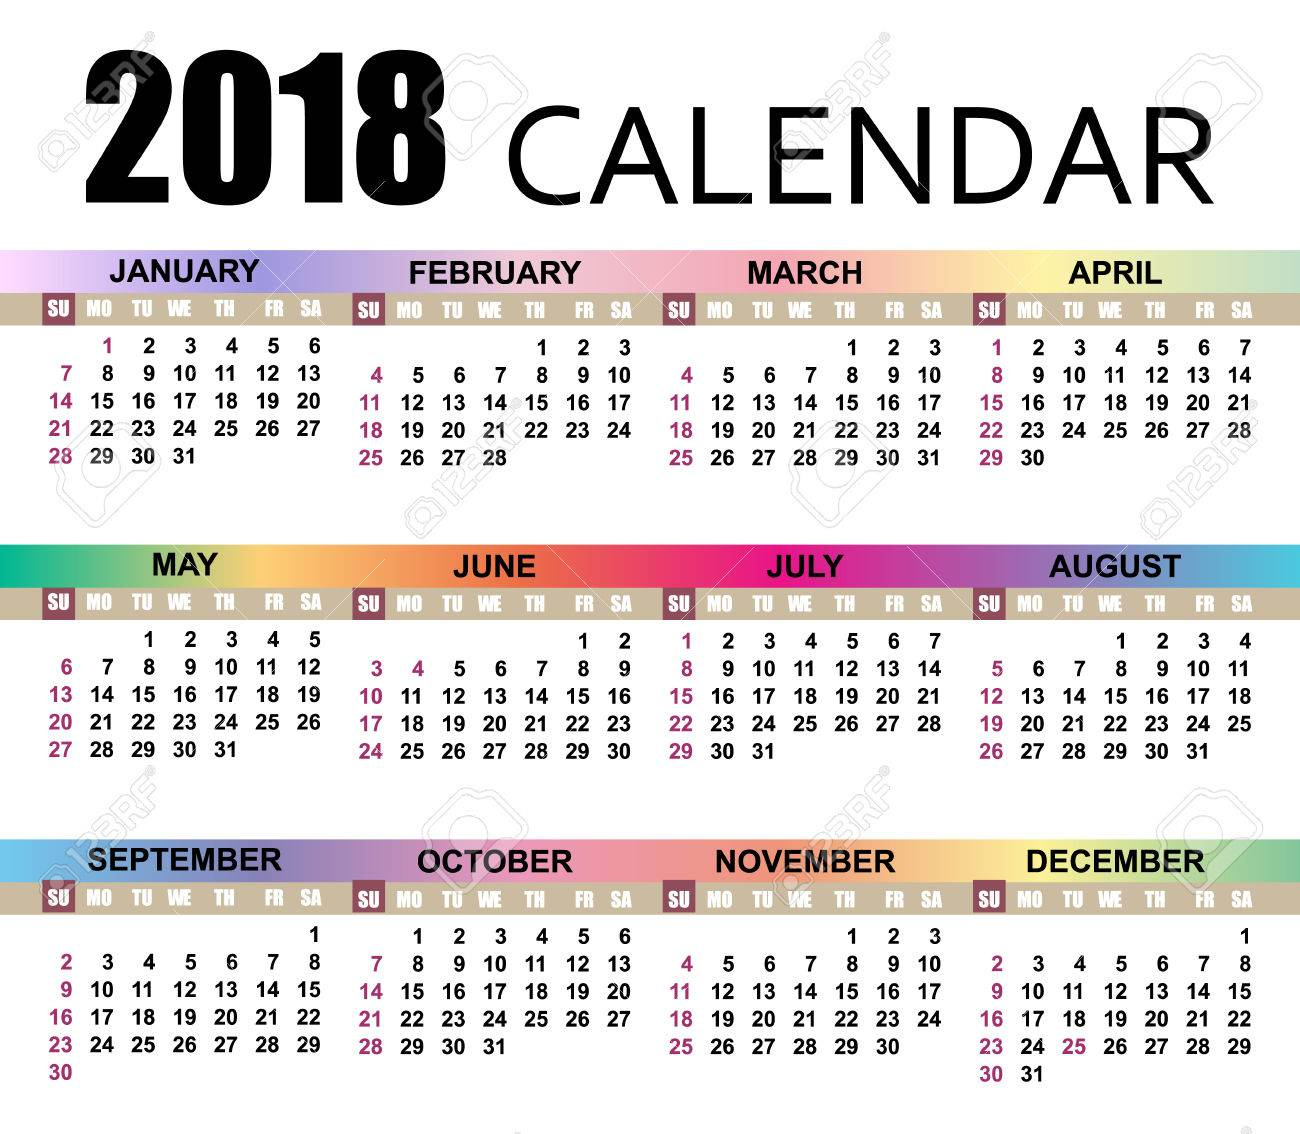 Calendario Con Week 2018.Calendar 2018 Template The Week Starts On Sunday Vector Illustration